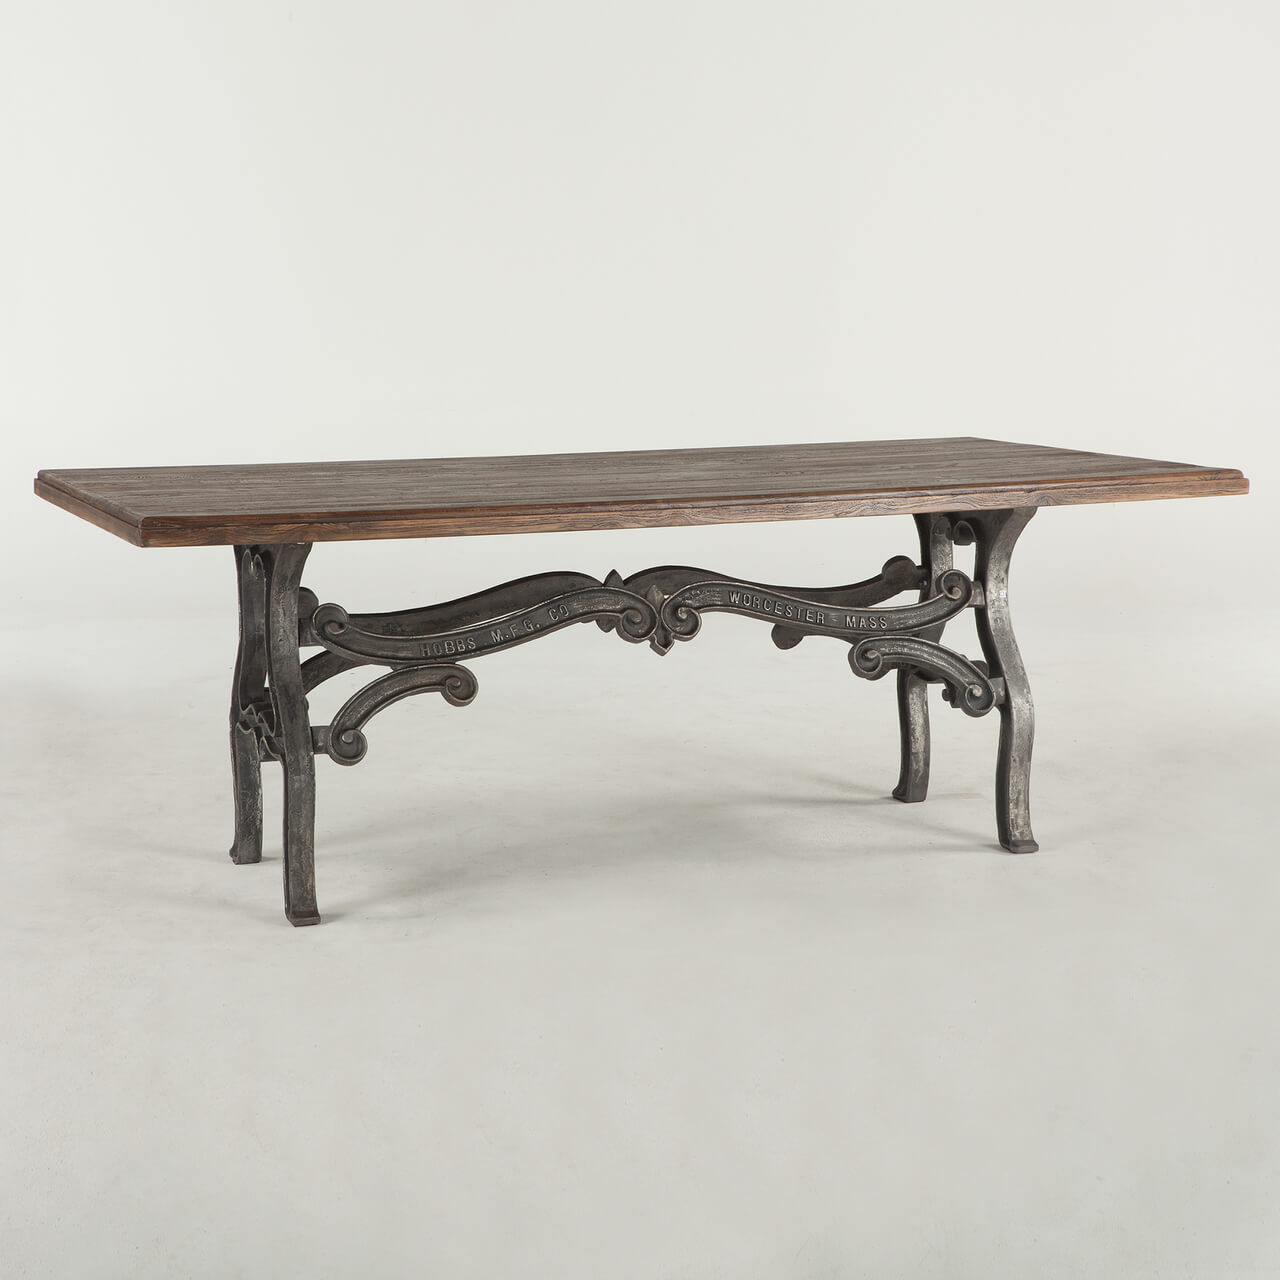 Hobbs French Industrial Dining Room Table 84